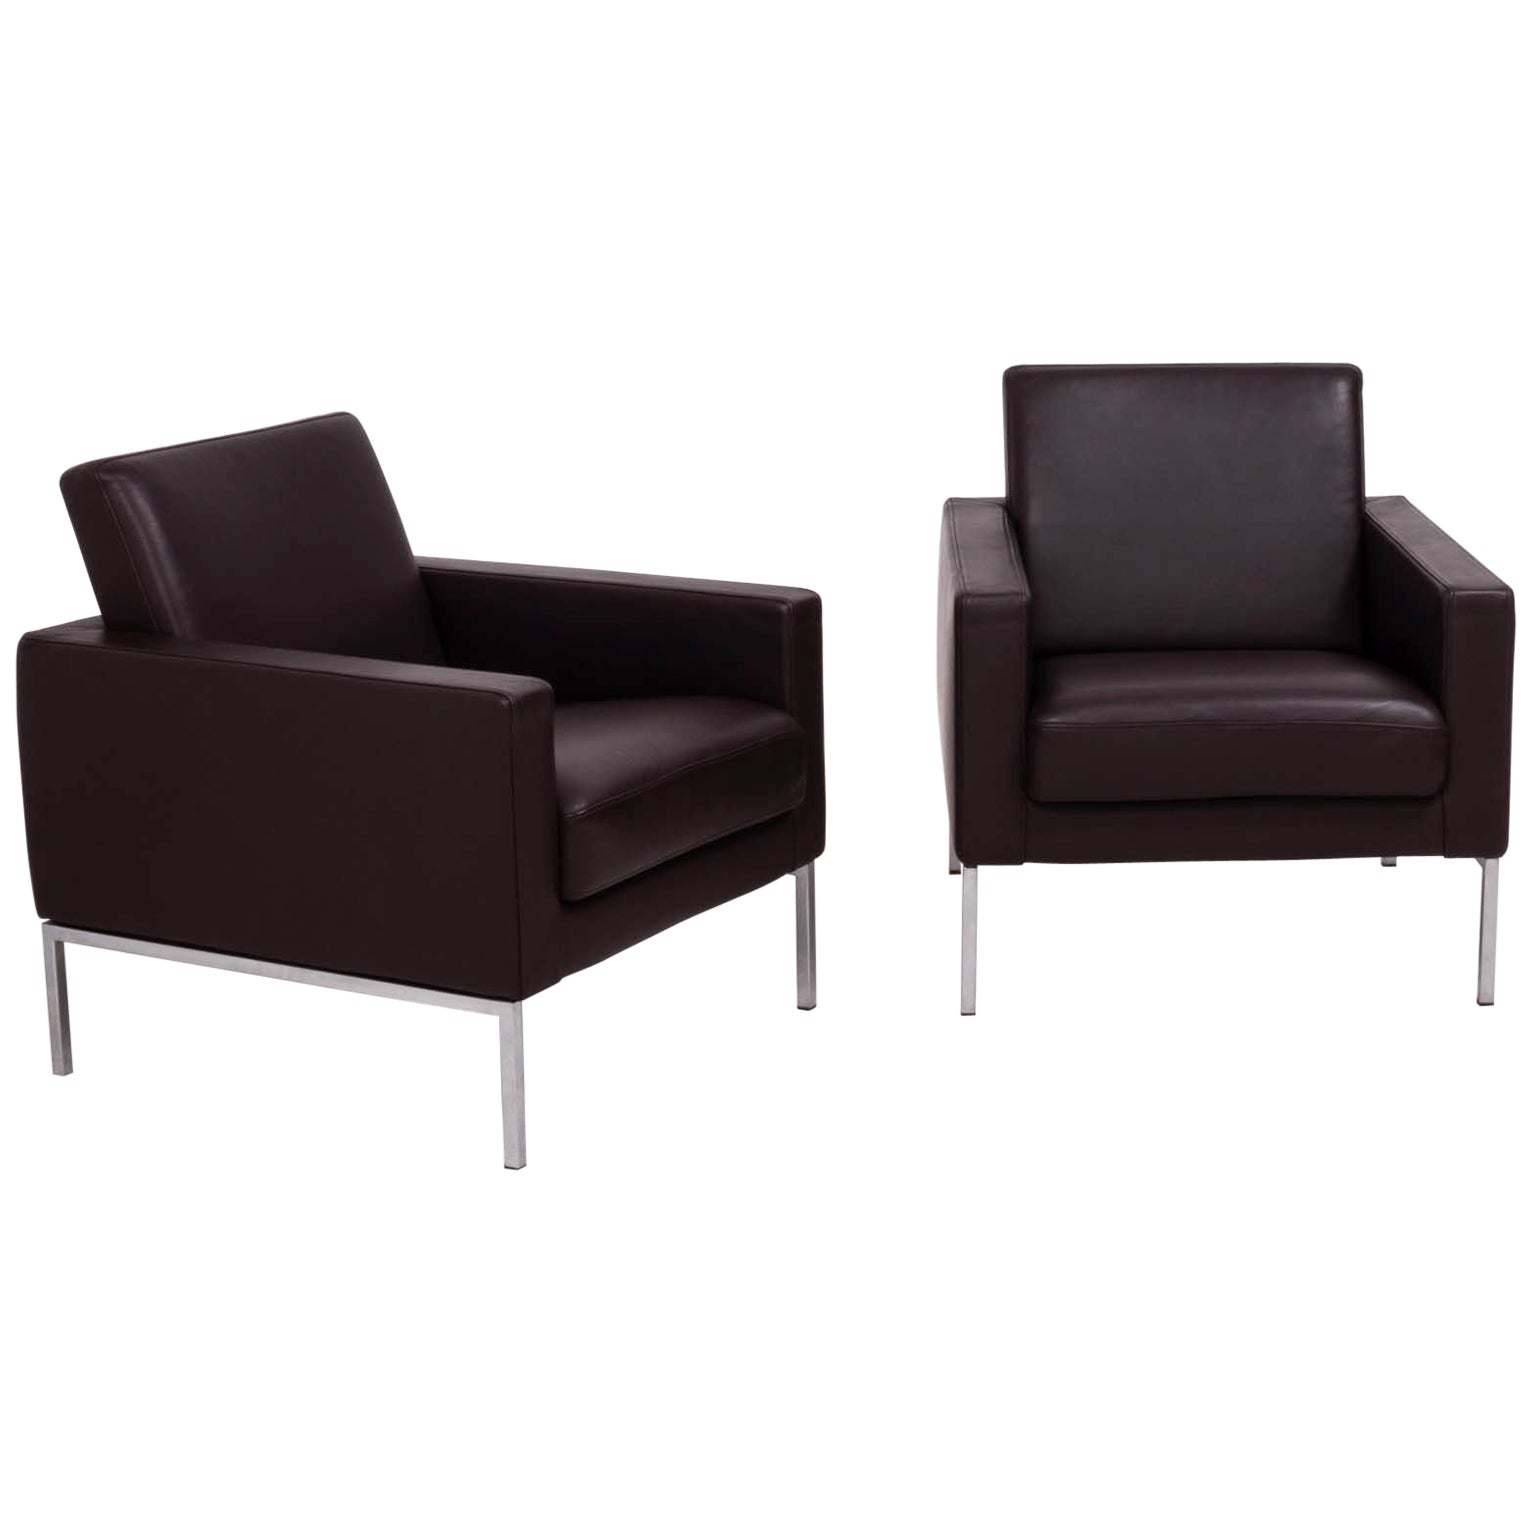 Pair of Walter Knoll Brown Leather Armchairs